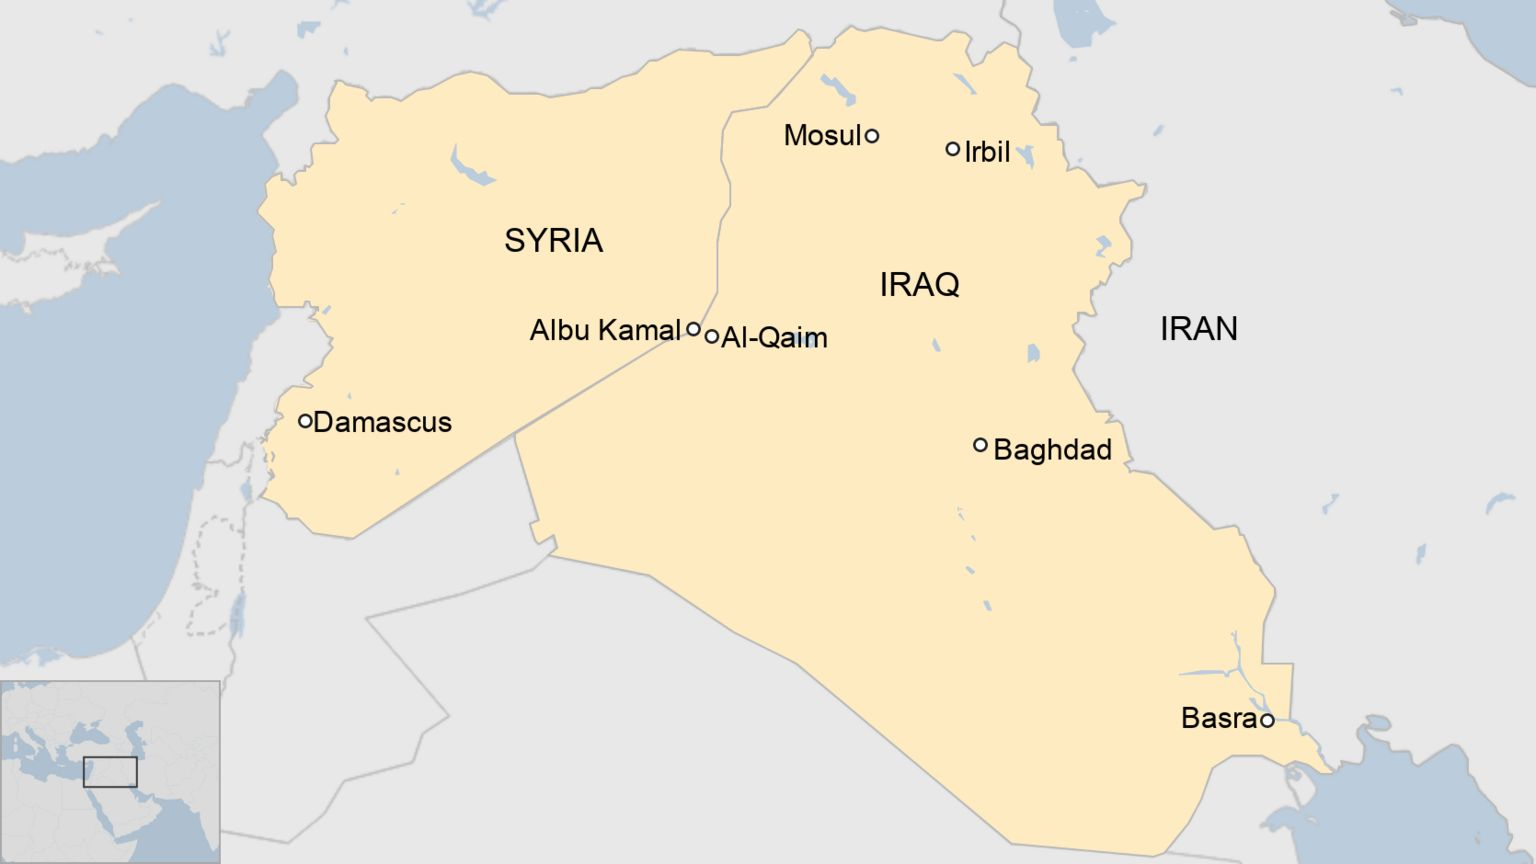 Map of Syria and Iraq